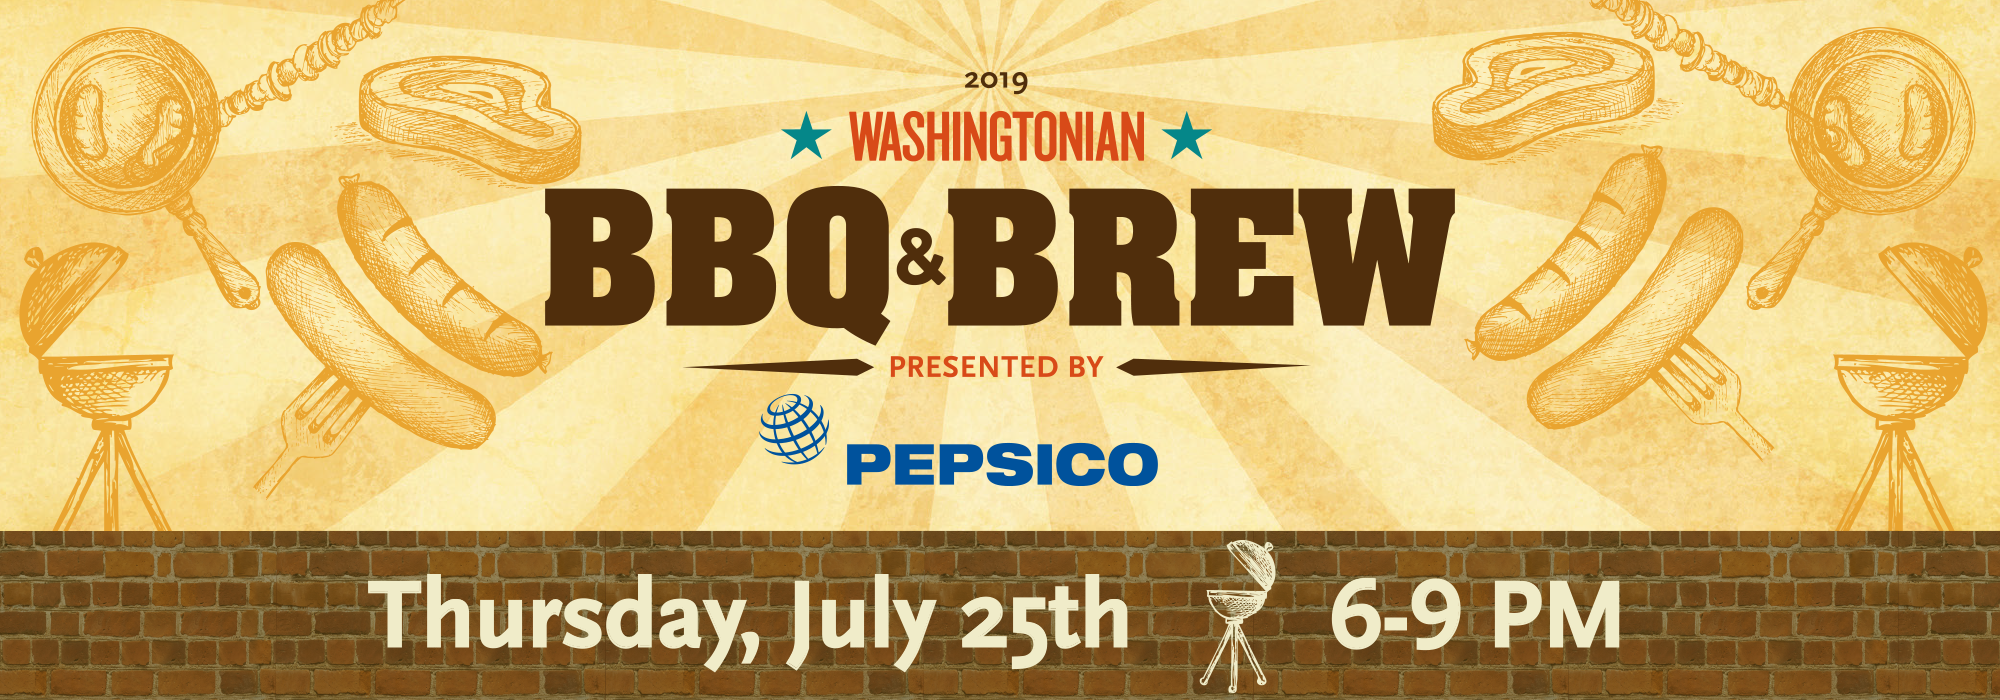 Enjoy an evening of delicious barbecue, burgers, and cold beer and beverages at Washingtonian's BBQ & Brew 2019, presented by PepsiCo!